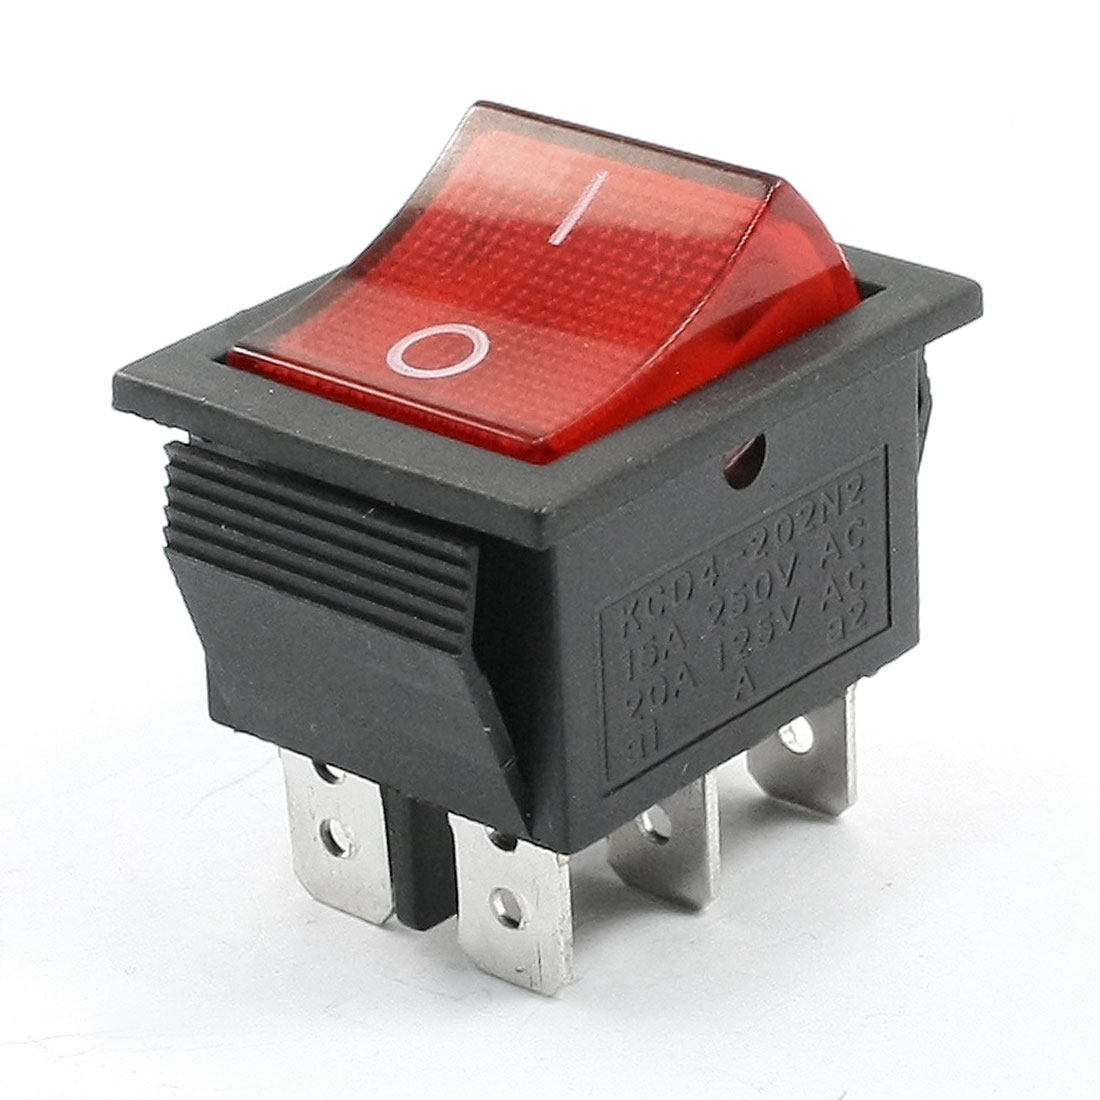 Illuminated-Red-Light-DPDT-On-Off-Snap-in-Rocker-Switch-15A-250VAC-20A-125VAC